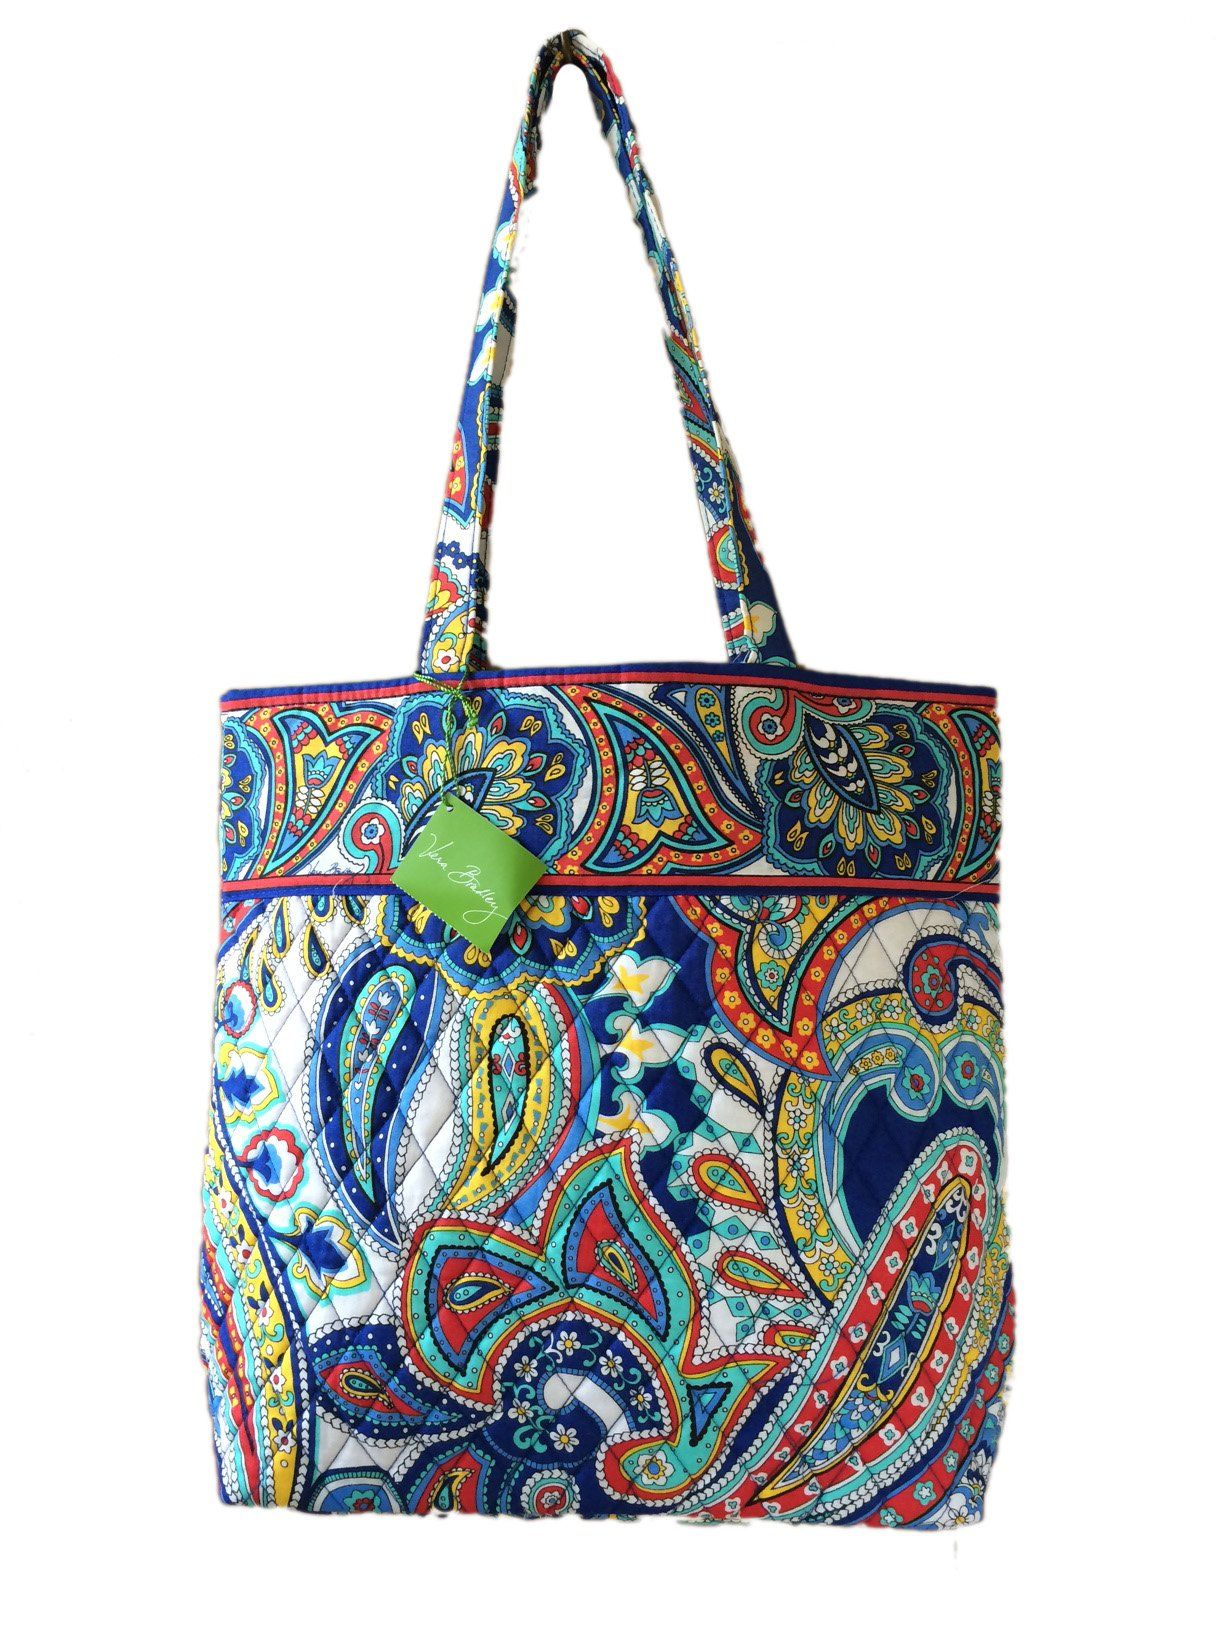 Vera Bradley Tote in Marina Paisley with Solid Pink Interior